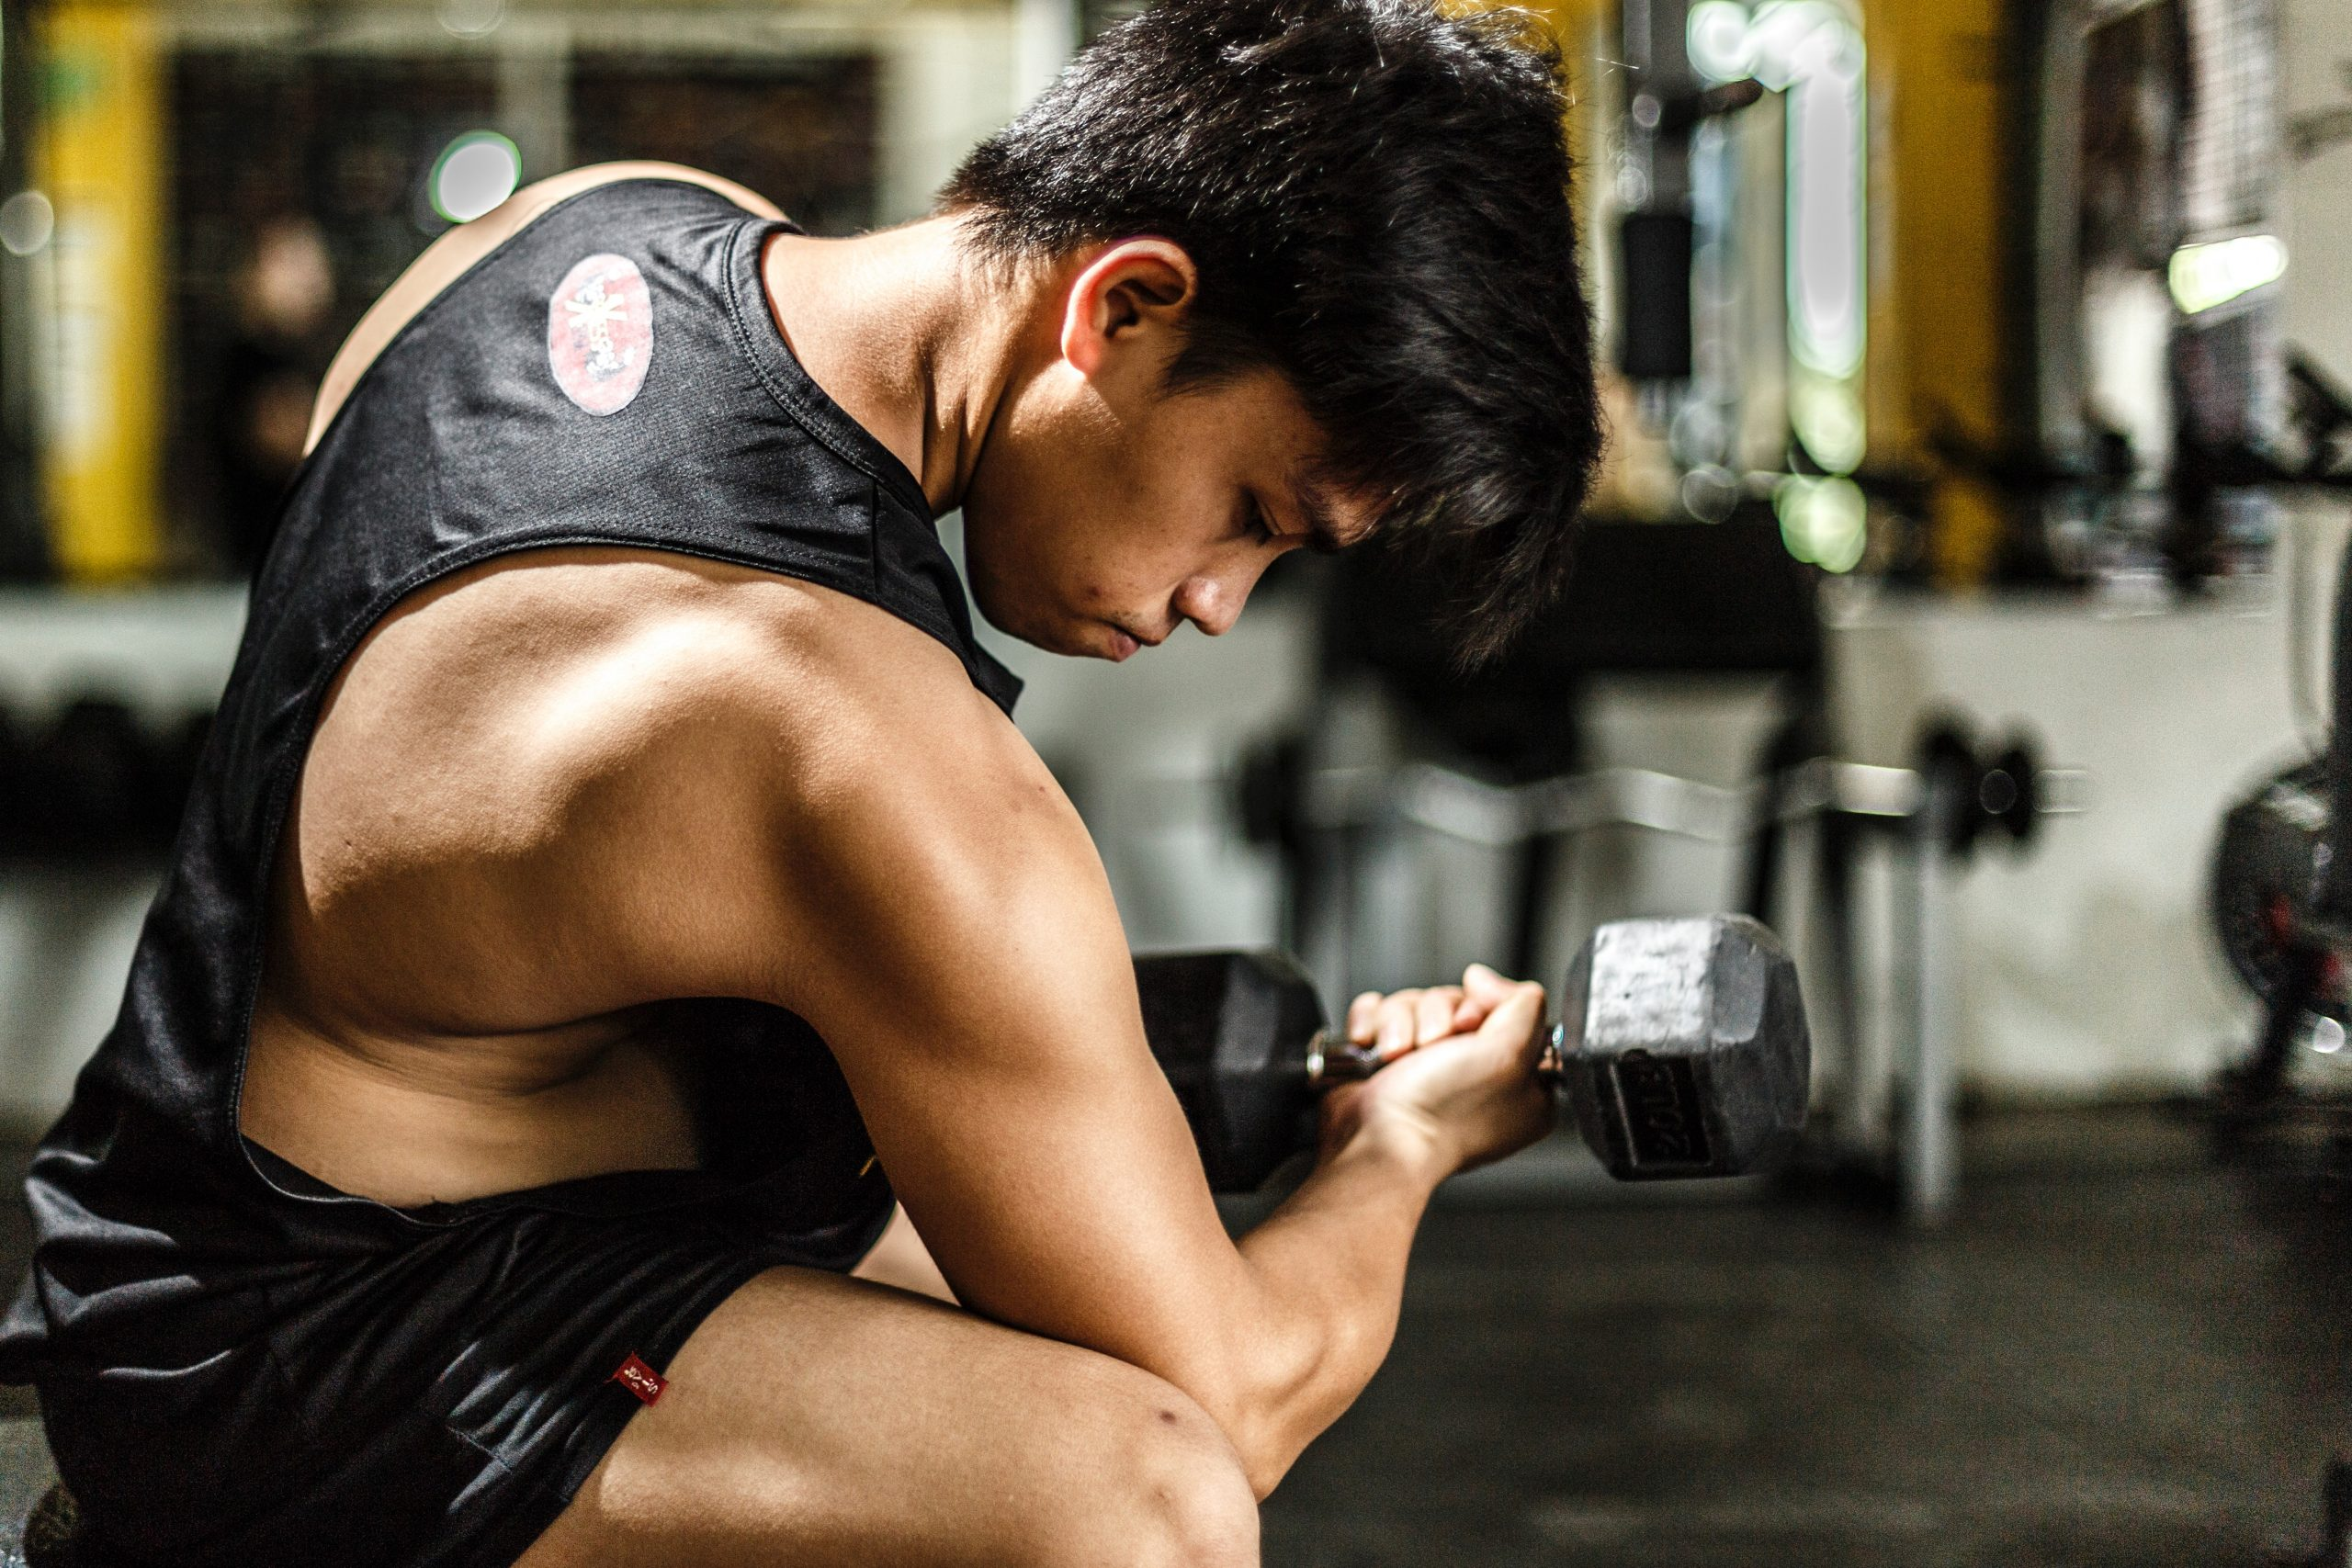 man wearing a black tank top working out with best gym weights